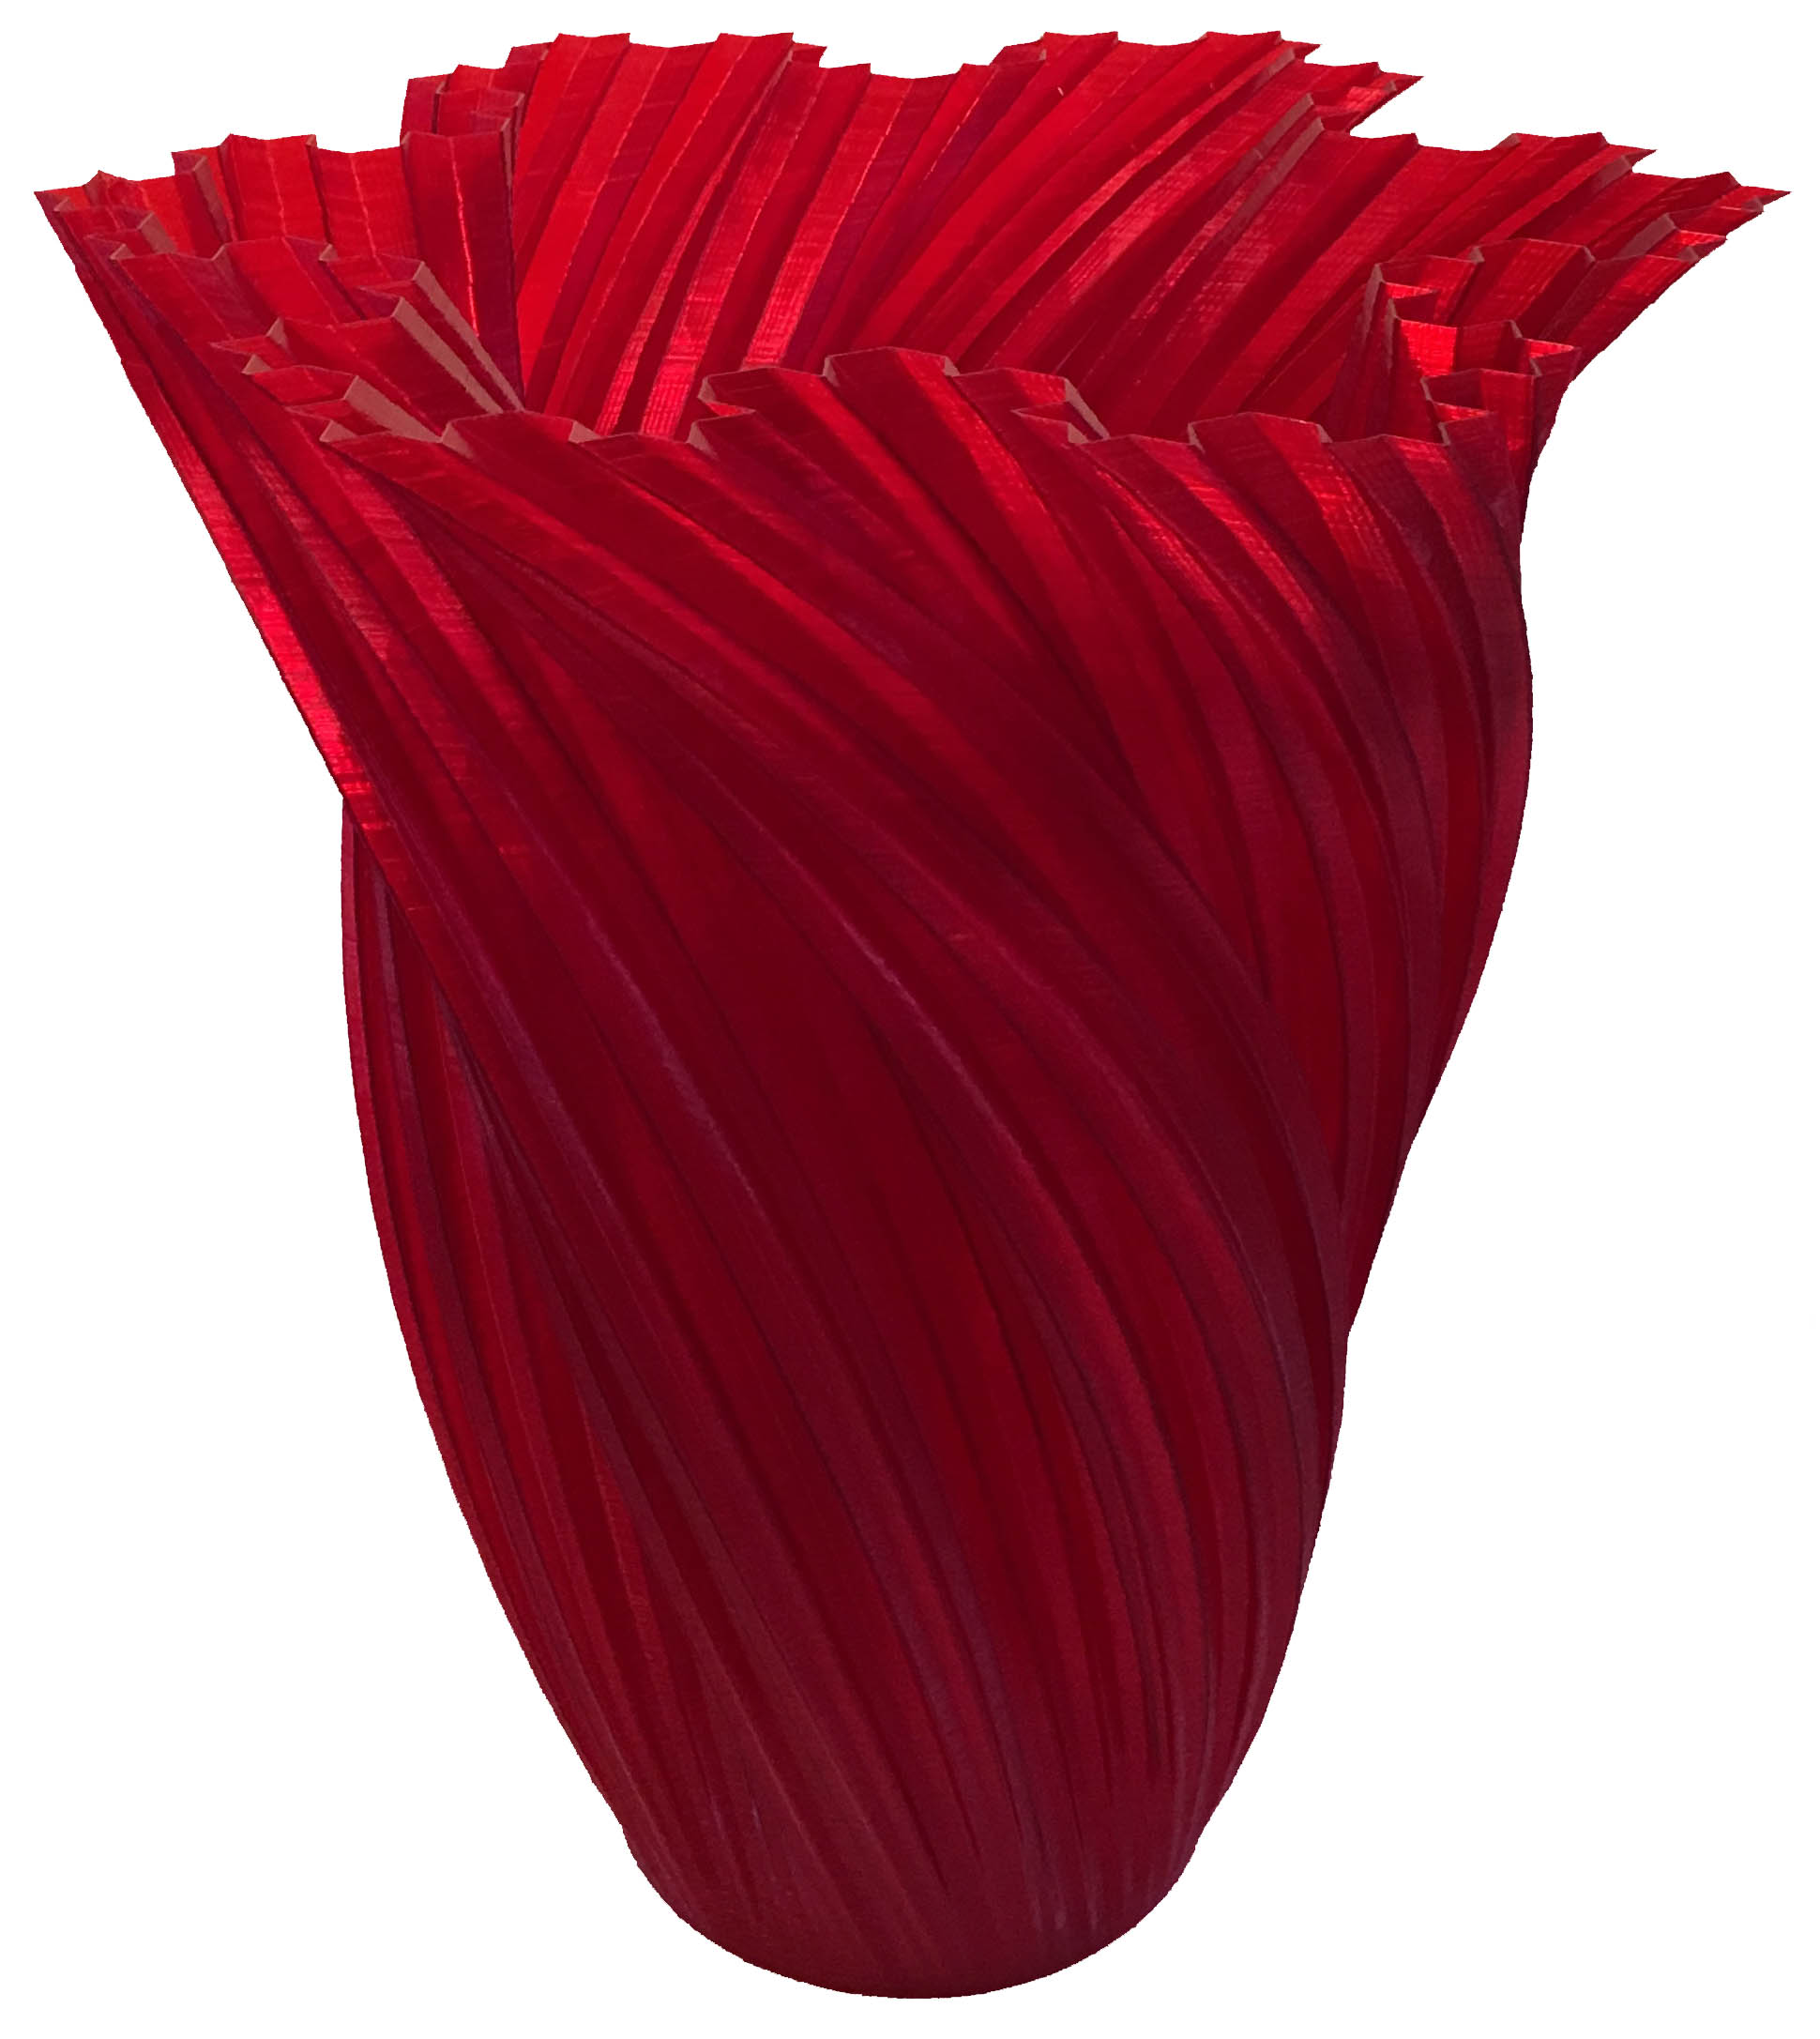 Koch_Vase_2 _no-Background